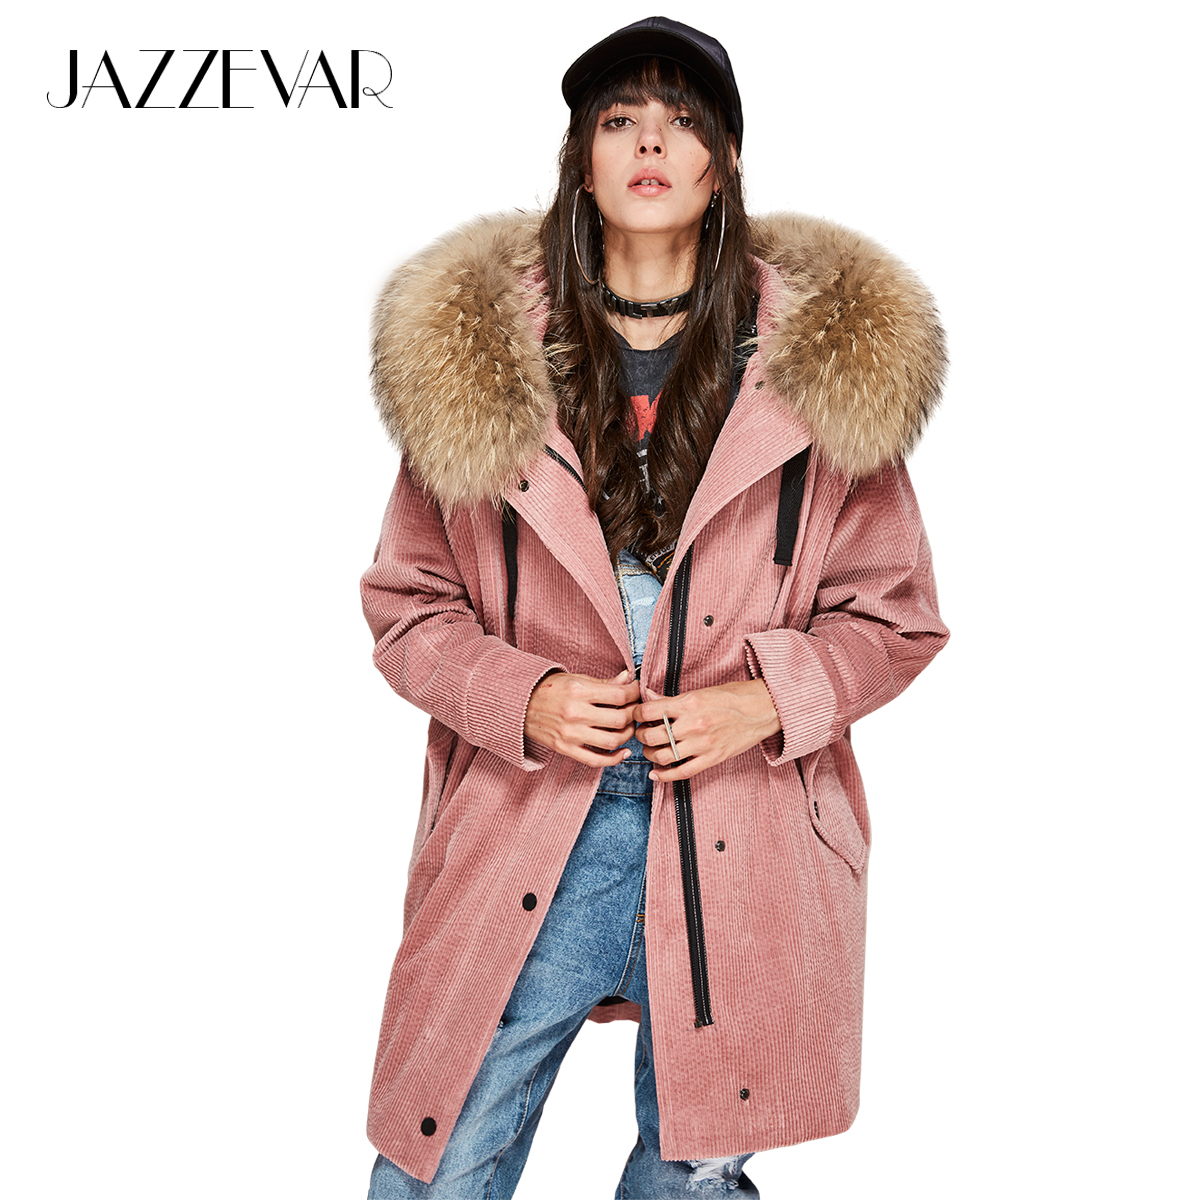 JAZZEVAR 2019 New Fashion Women's Parkas Detachable Liner Real Raccoon Fur Oversize Winter Jacket Corduroy Coat Loose Clothing